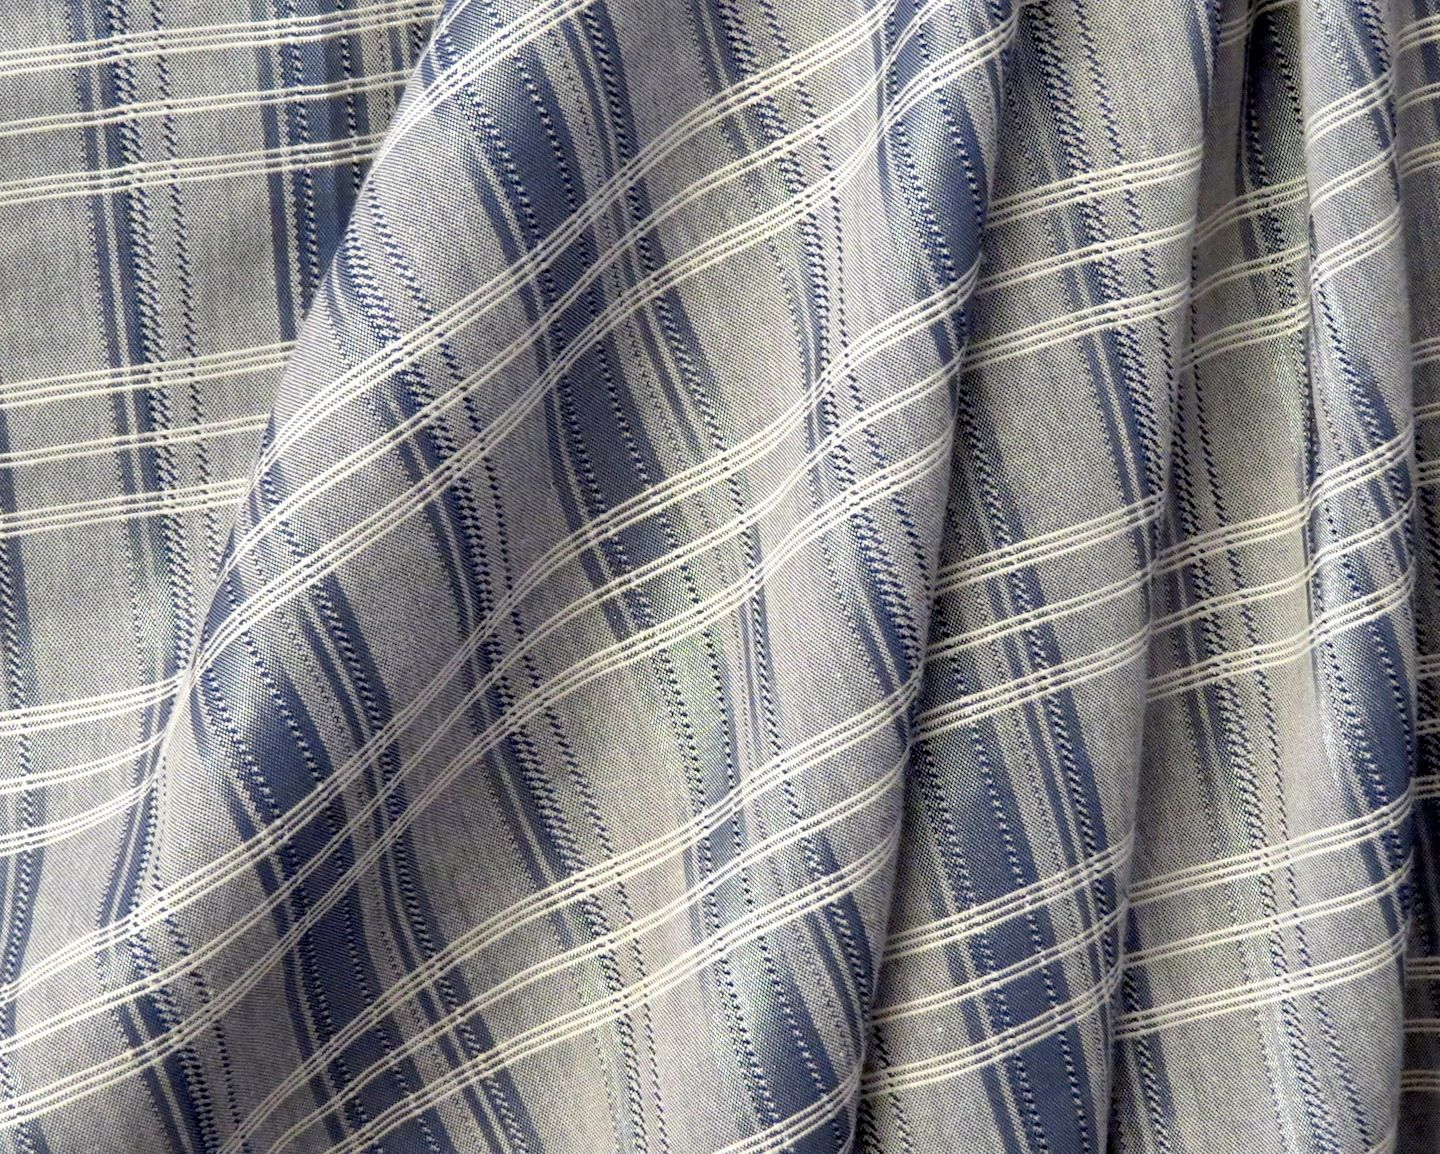 Verona Grelin Blue And Silver Plaid from Italy